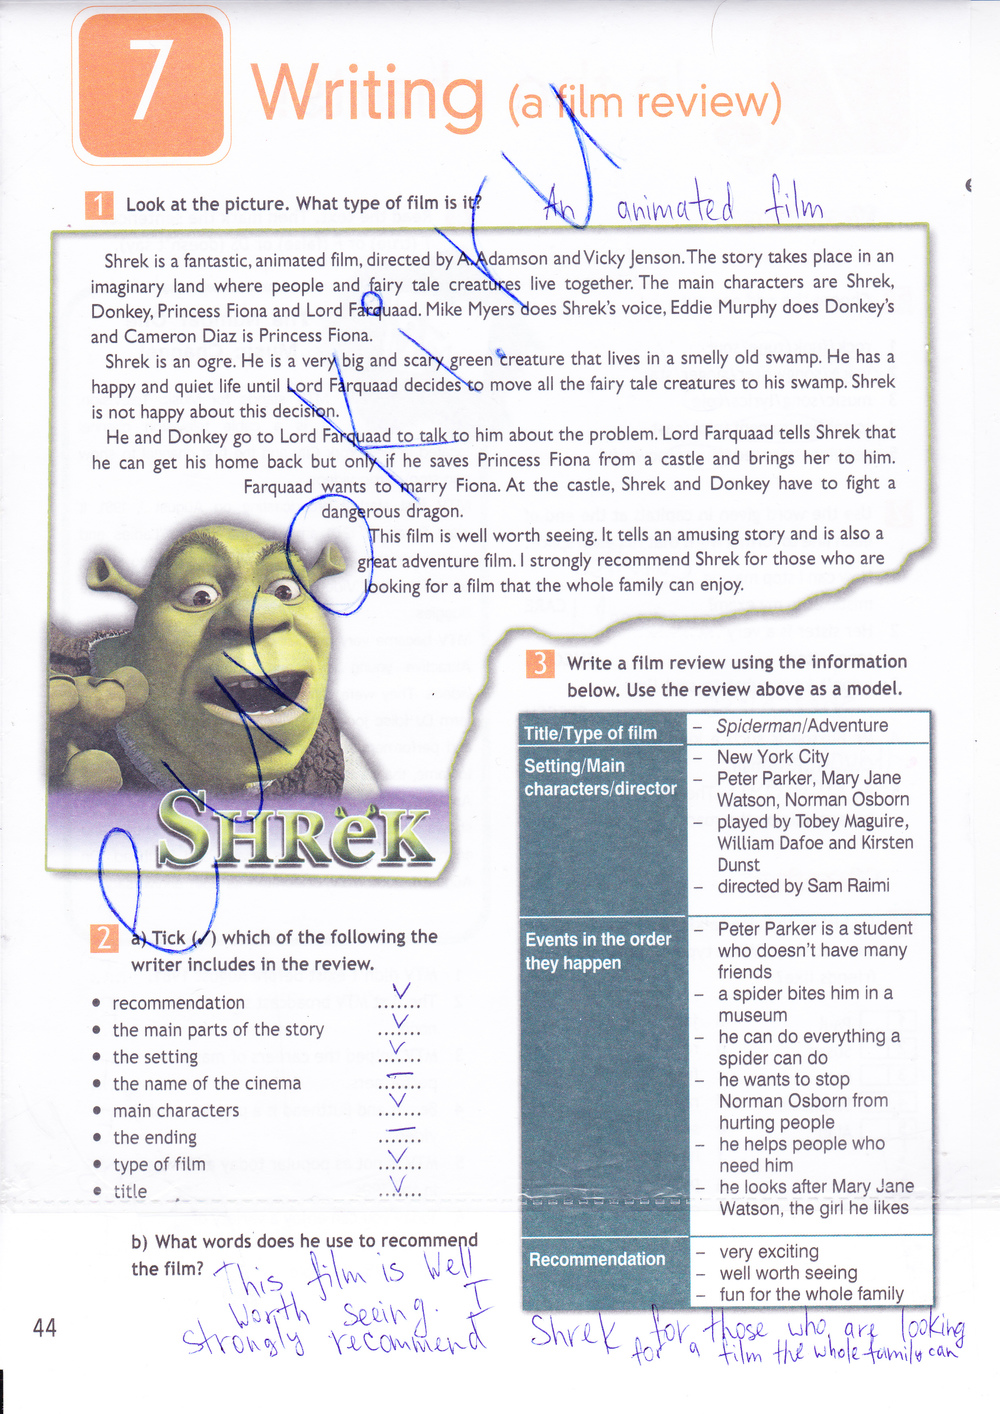 an analysis of the main character shrek and lord farquaad and how the makers use different presentat Fiona decides to marry lord farquaad and shrek and donkey go back to the bad character in the story is lord farquaad and the good rhetorical analysis.